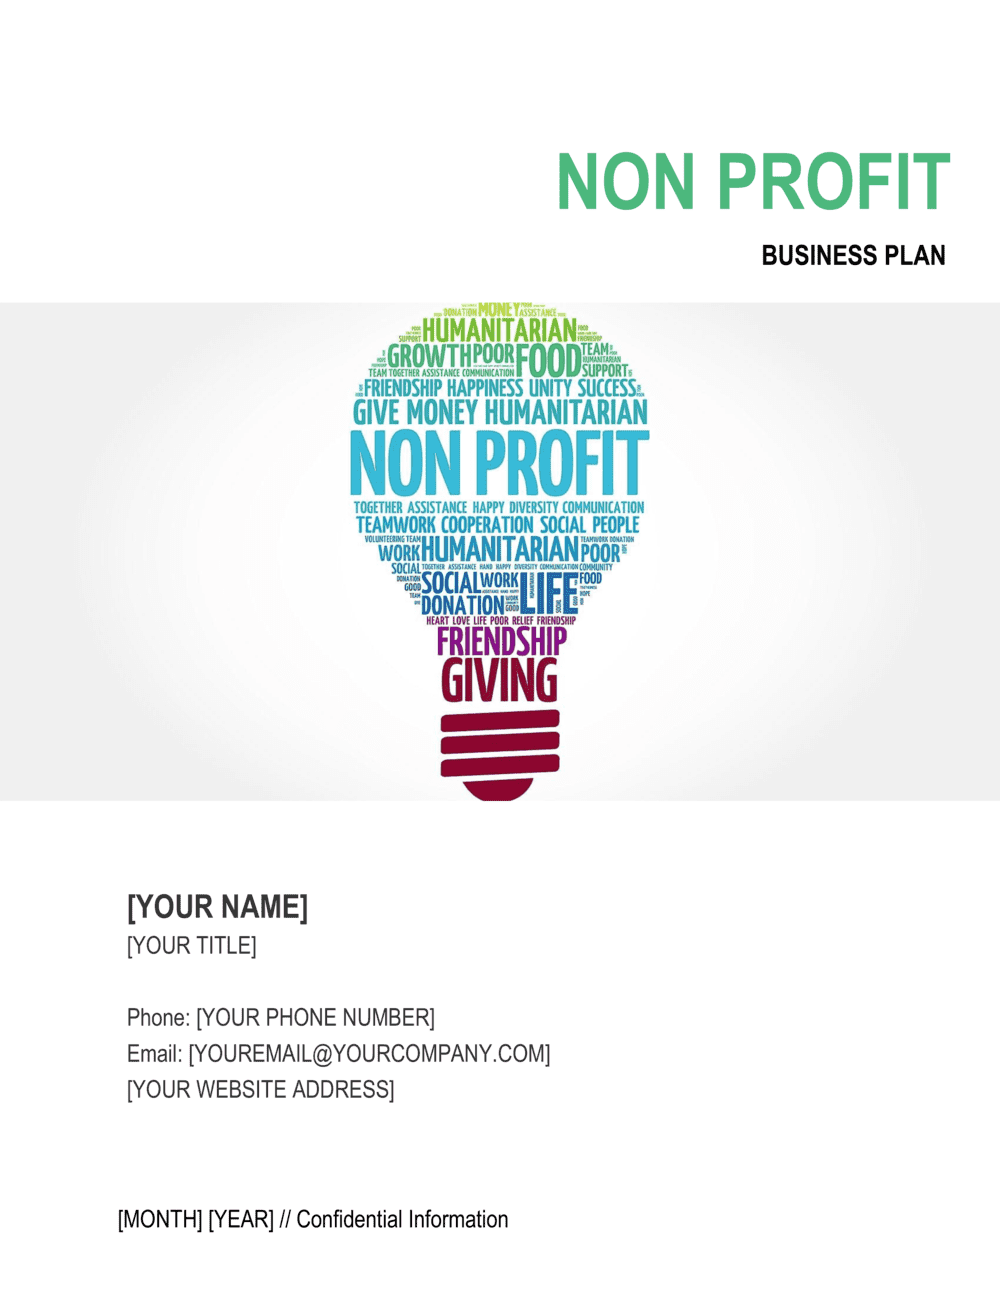 Business-in-a-Box's Non-profit Organization Business Plan 5 Template